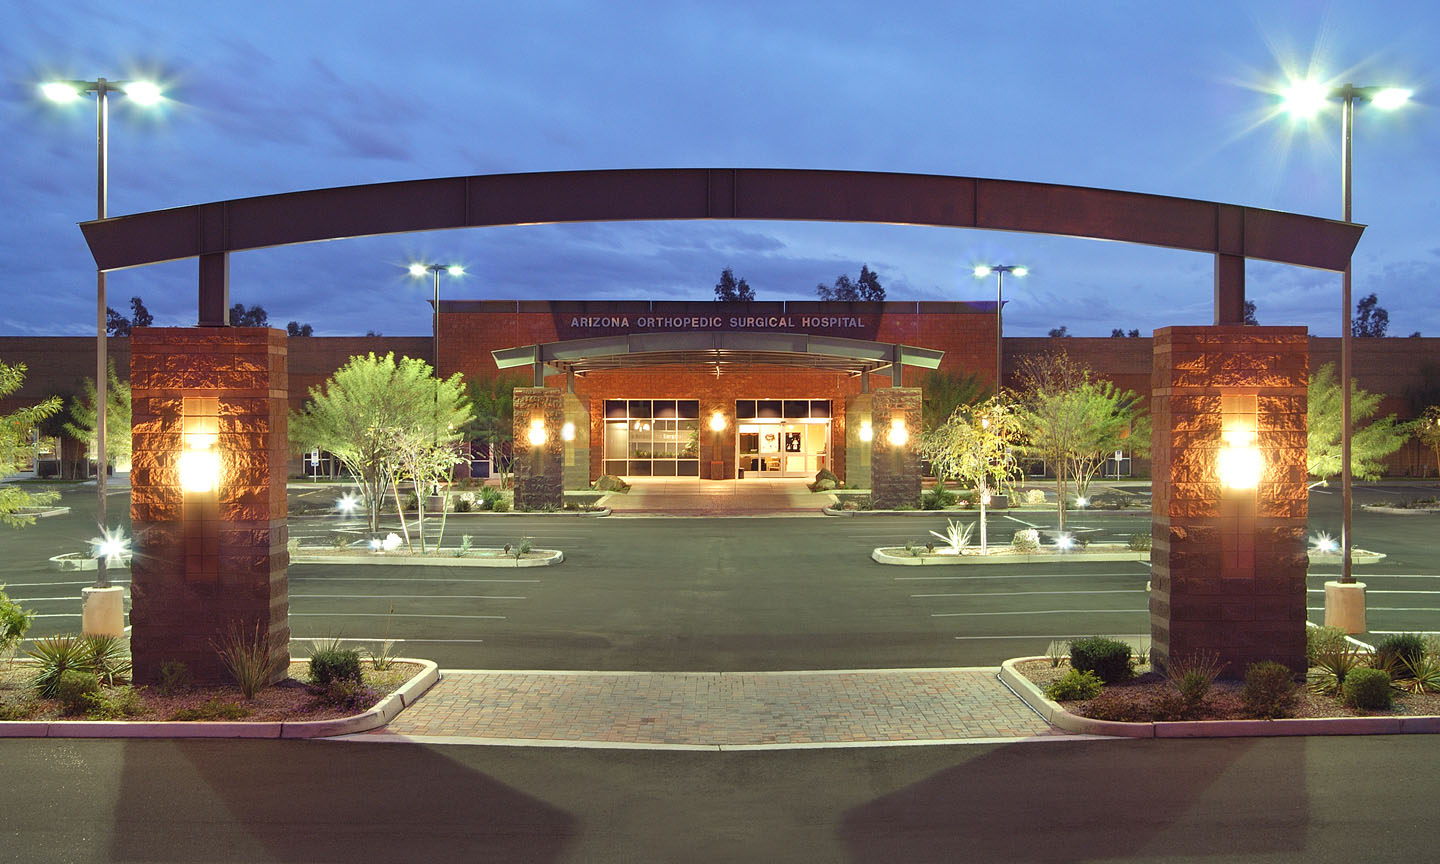 Arizona Orthopedic commercial real estate developers